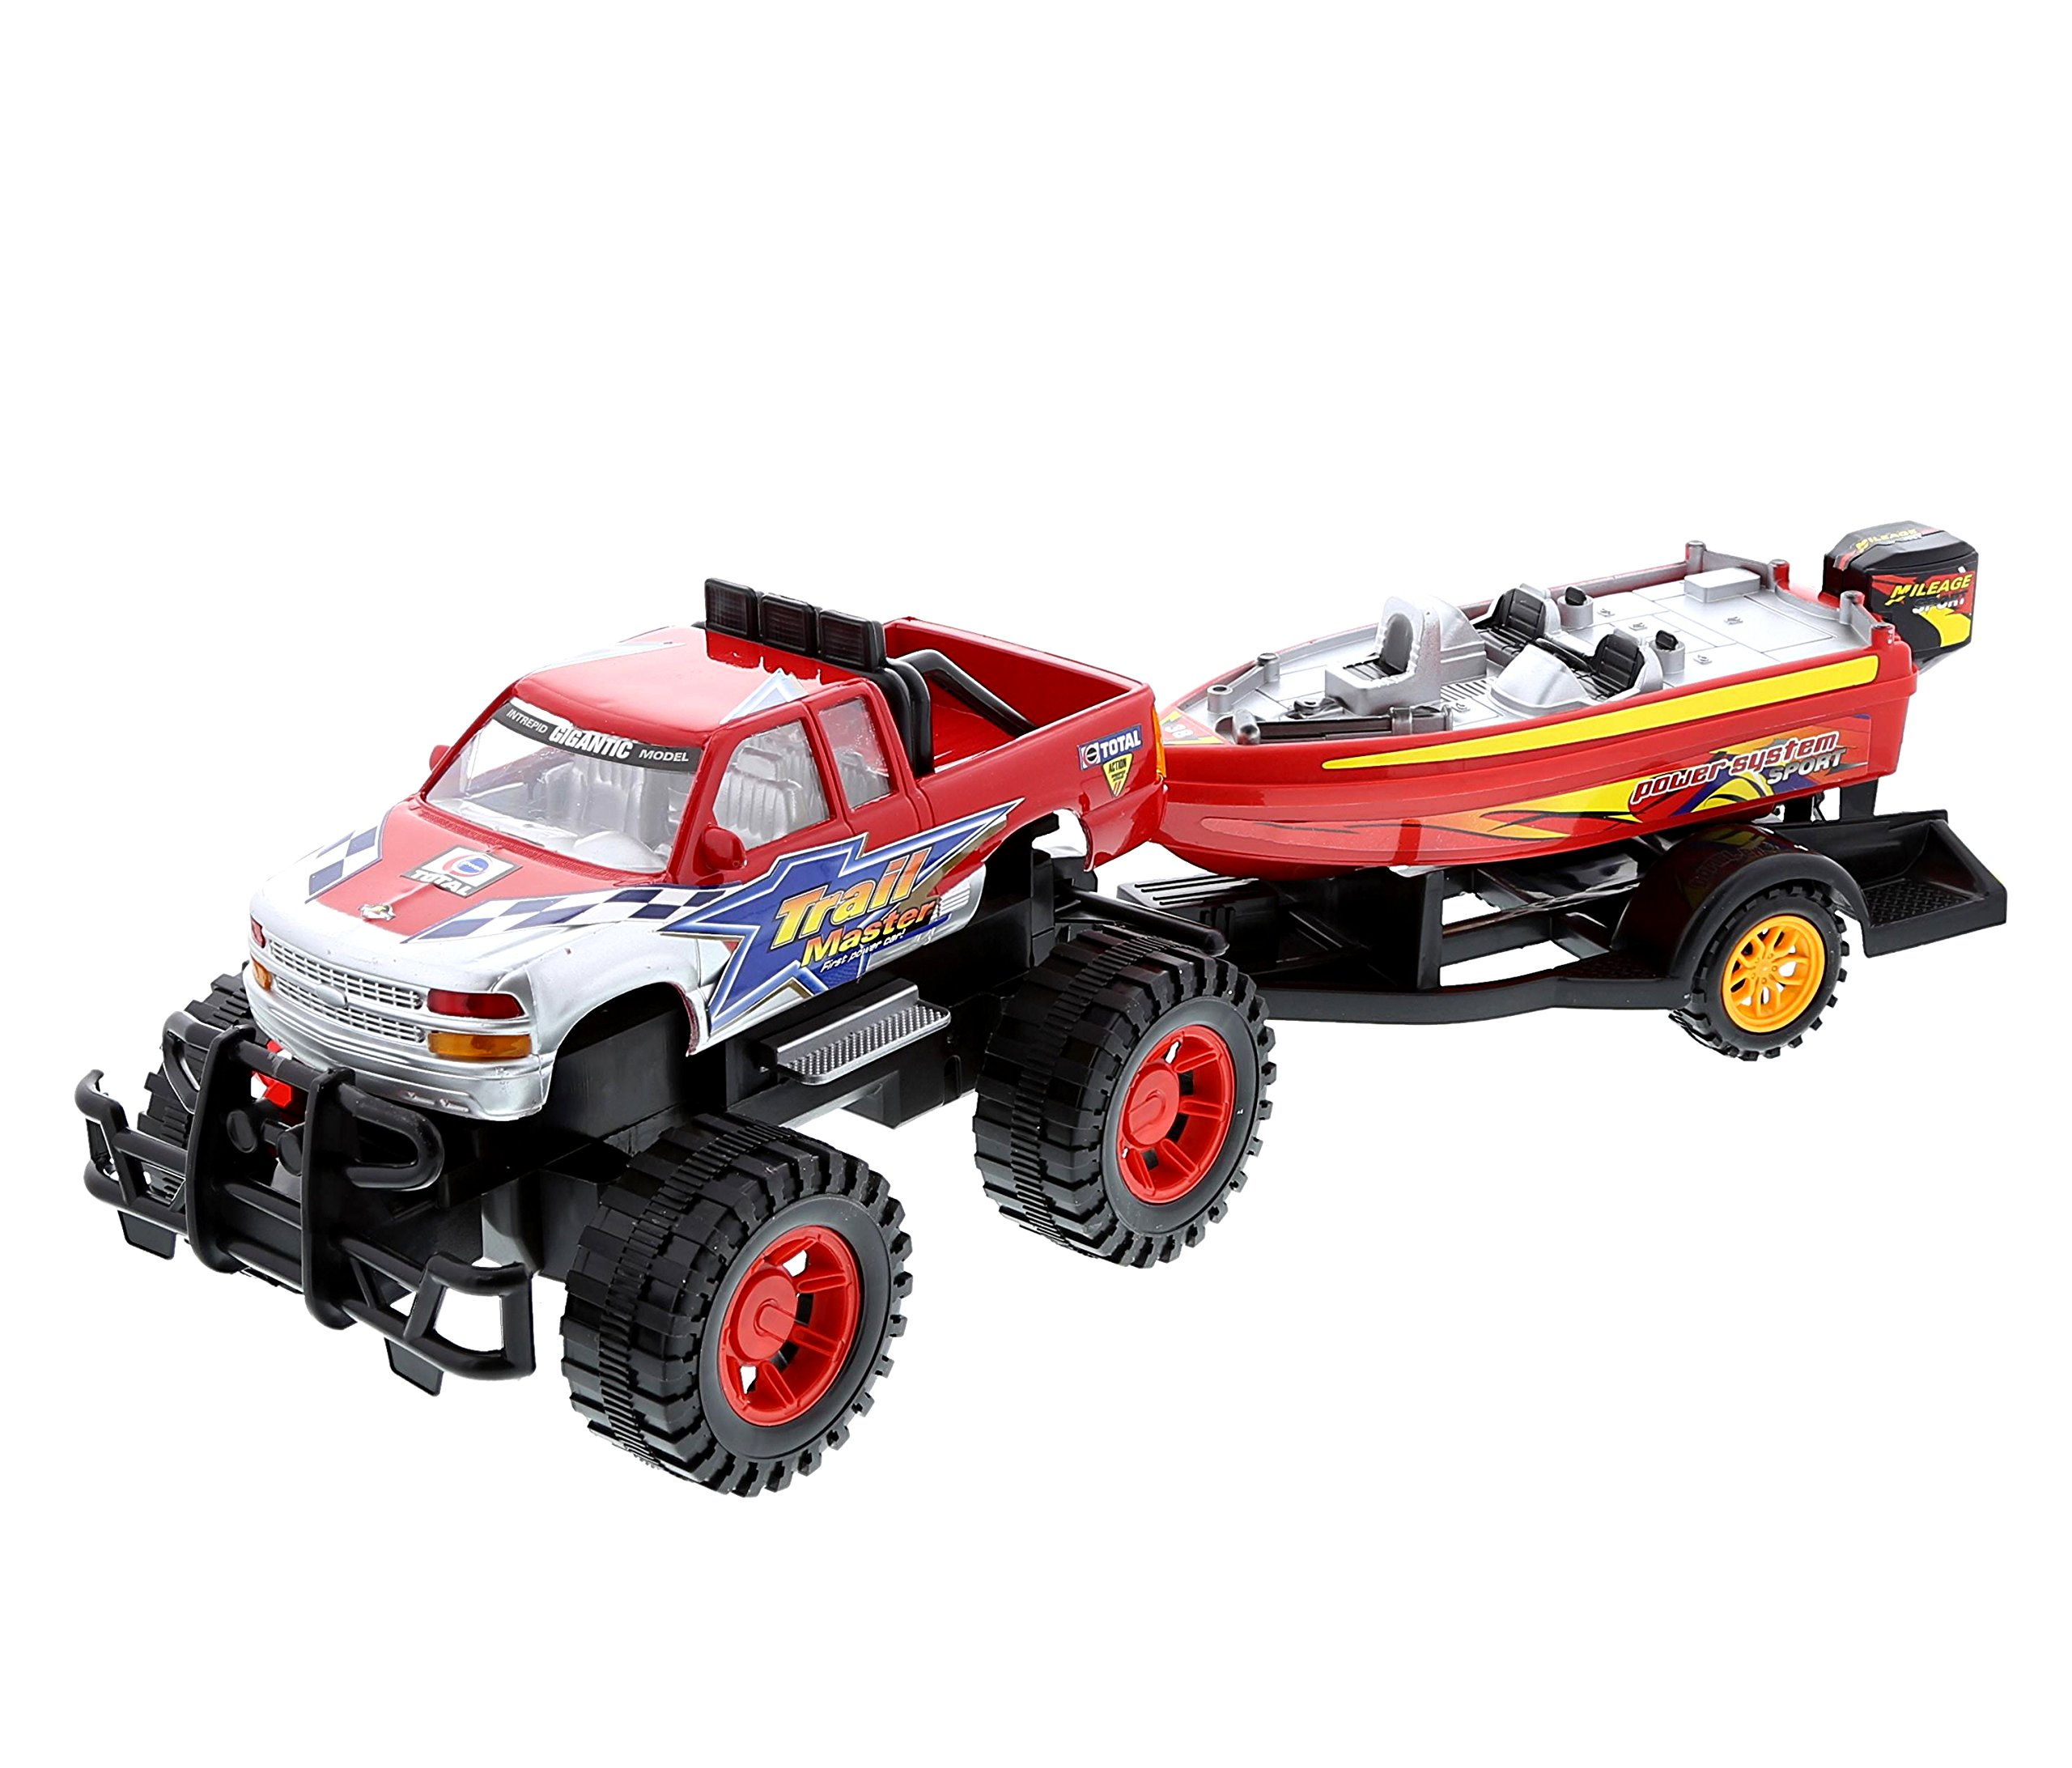 Monster Truck Trailer with Speed Boat - Friction Push Powered Hauler Play Set - Great Car Boat Fun Adventure for Boys, Kids, Toddlers - Vehicle Theme - Red Or Black Color - Item 101308